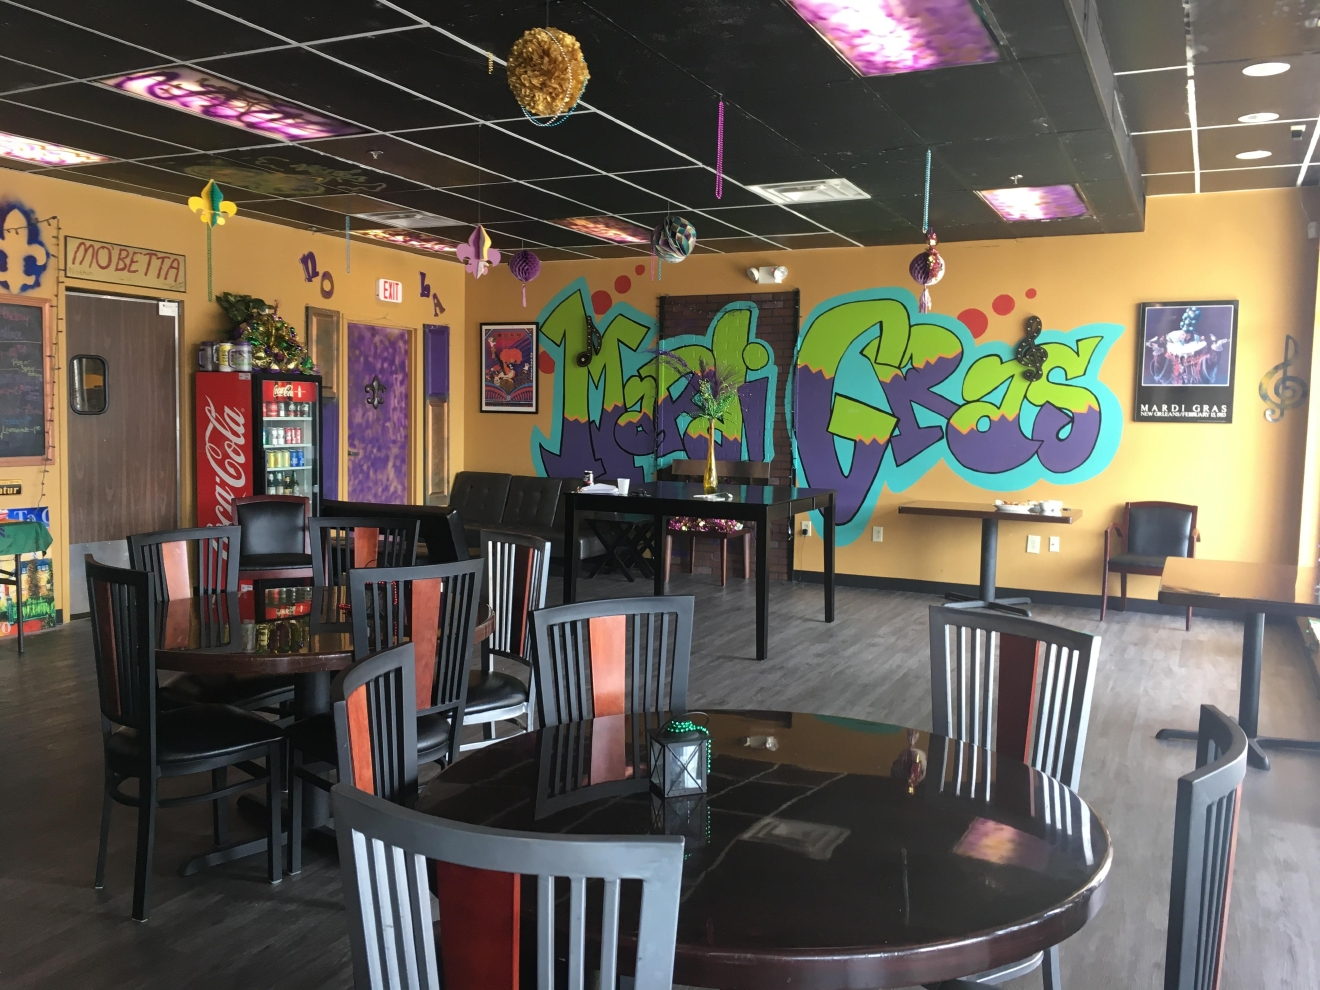 PLACE: Mardi Gras on Madison / FOR: Dinner / ADDRESS: 1524 Madison Road, Cincinnati, OH 45206 / Image: Delaney French // Published: 4.4.17